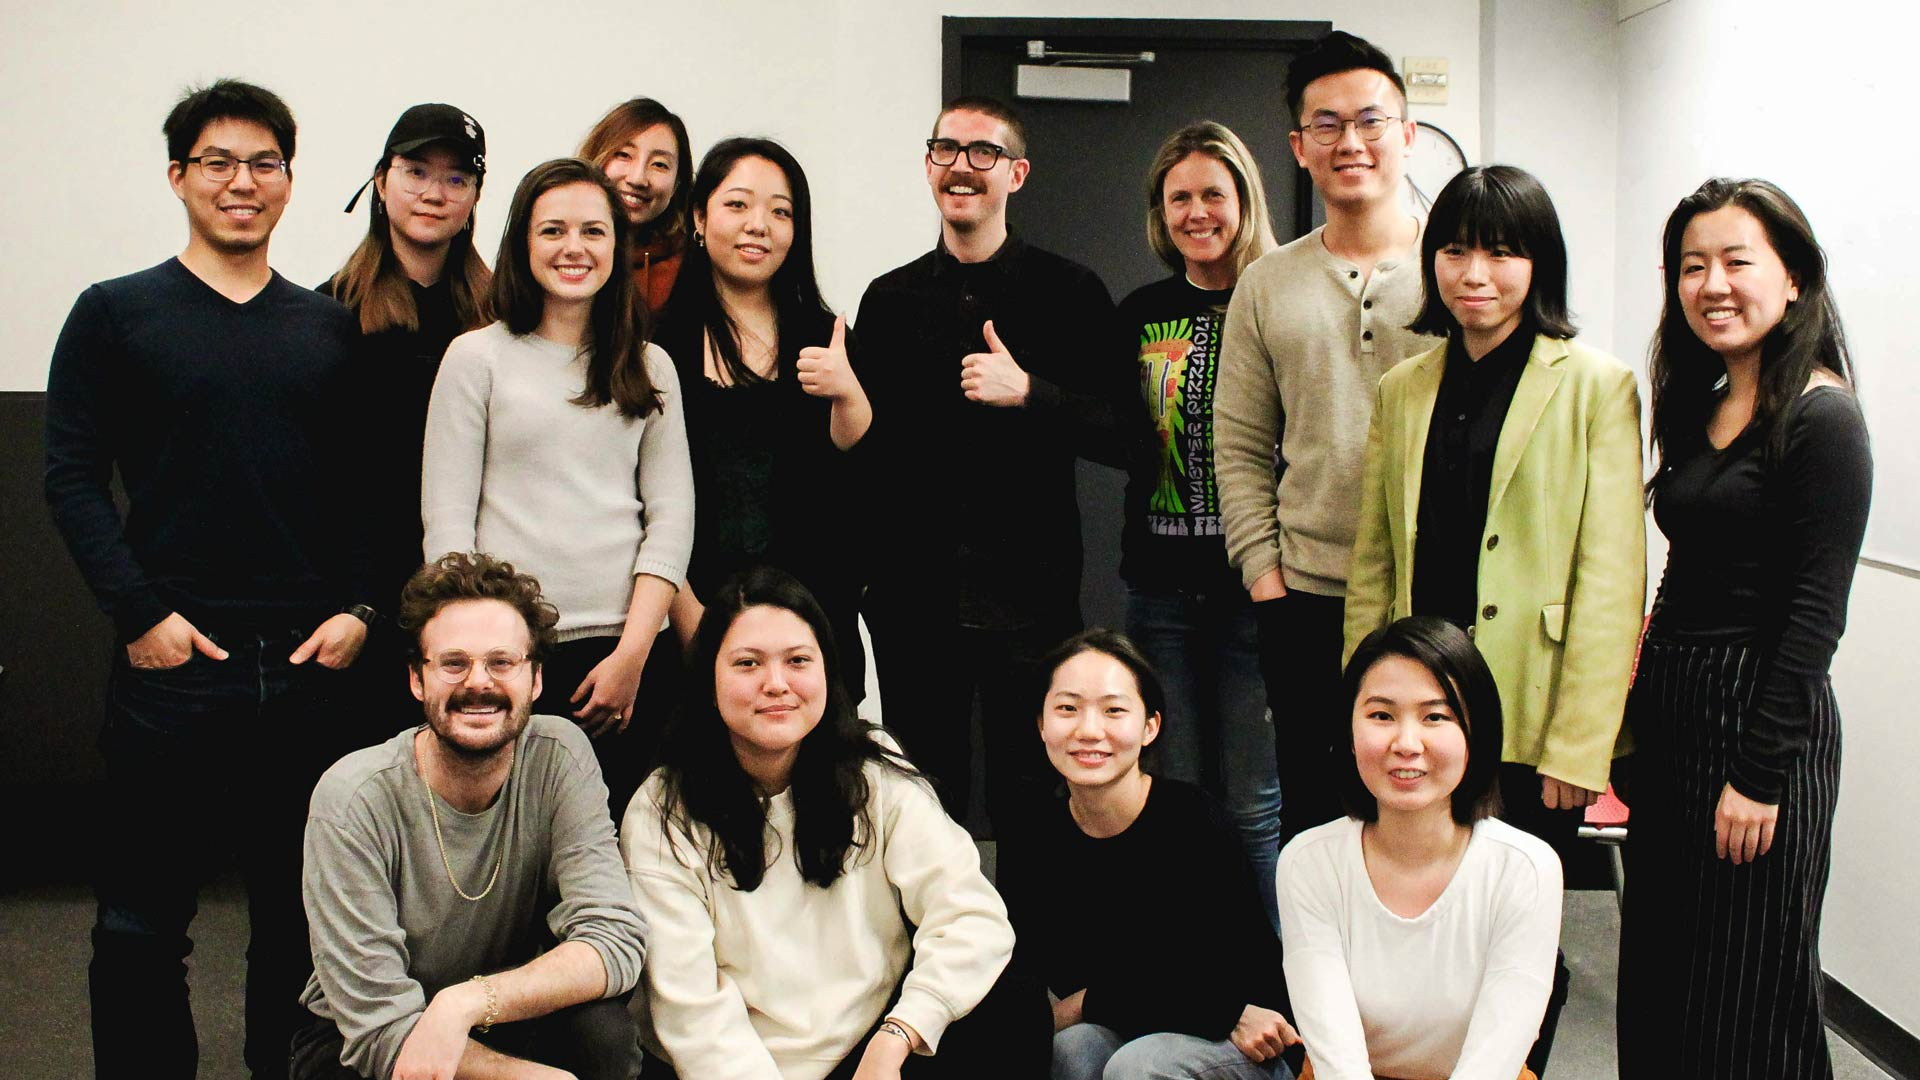 SVA MFA Design students posing for a photo with Jesse Reed in the classroom